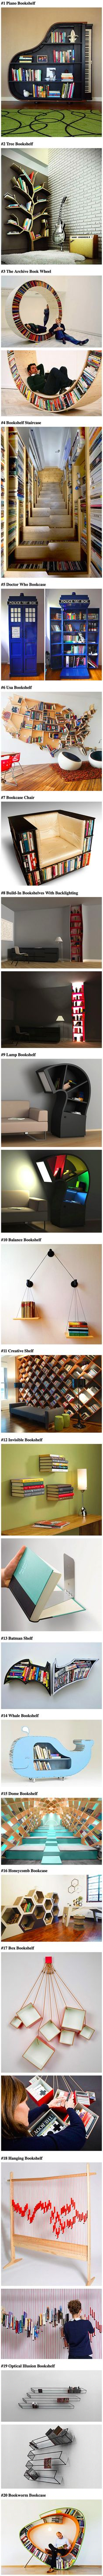 We have rounded up a collection of cool bookshelves that geeks would love.